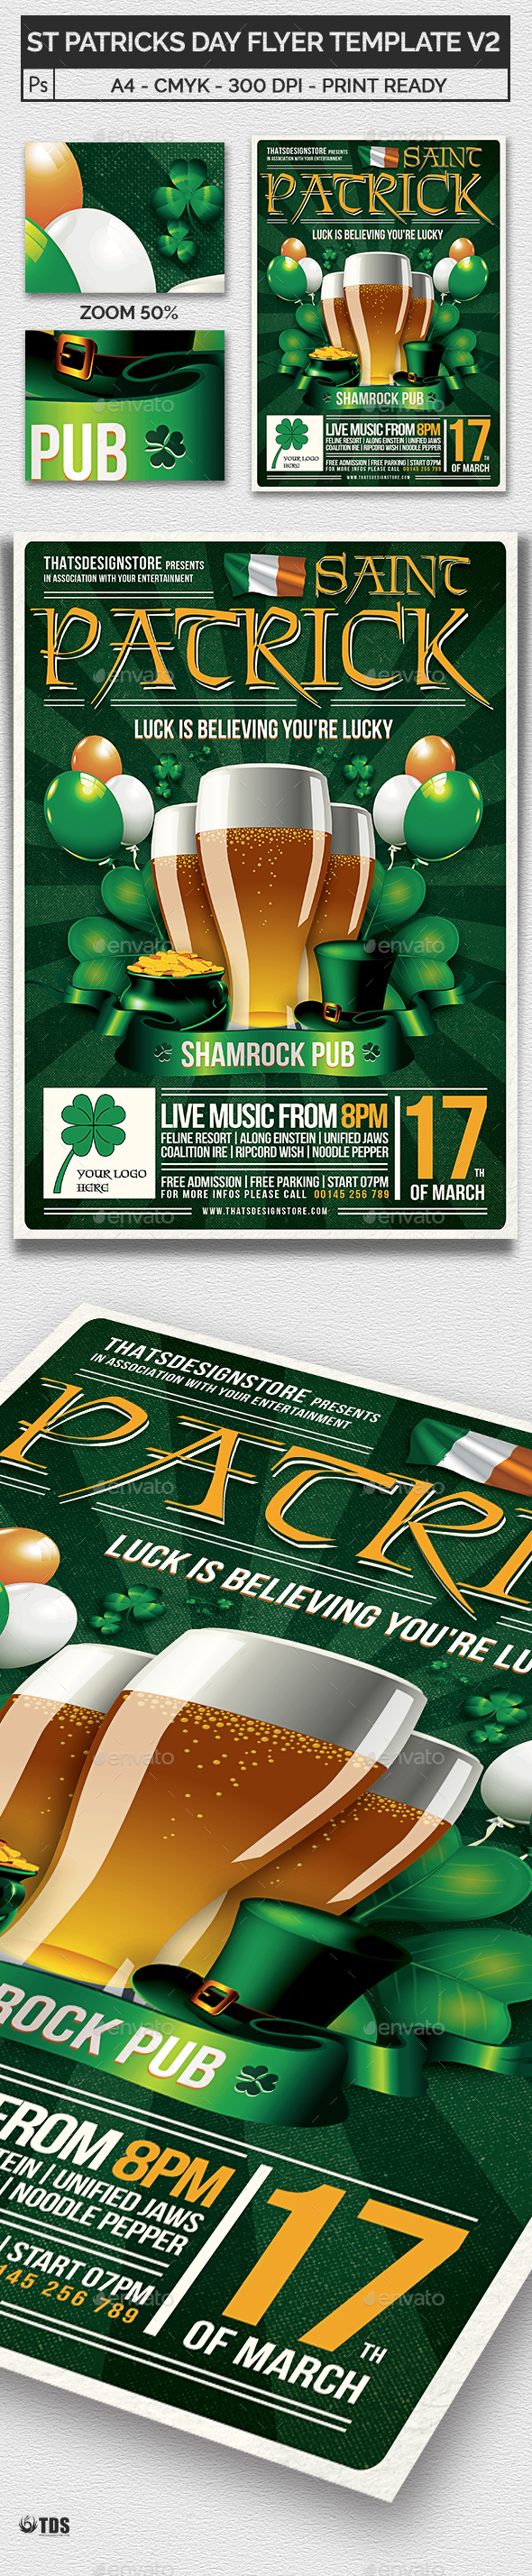 Saint Patricks Day Flyer Template V2 - Holidays Events